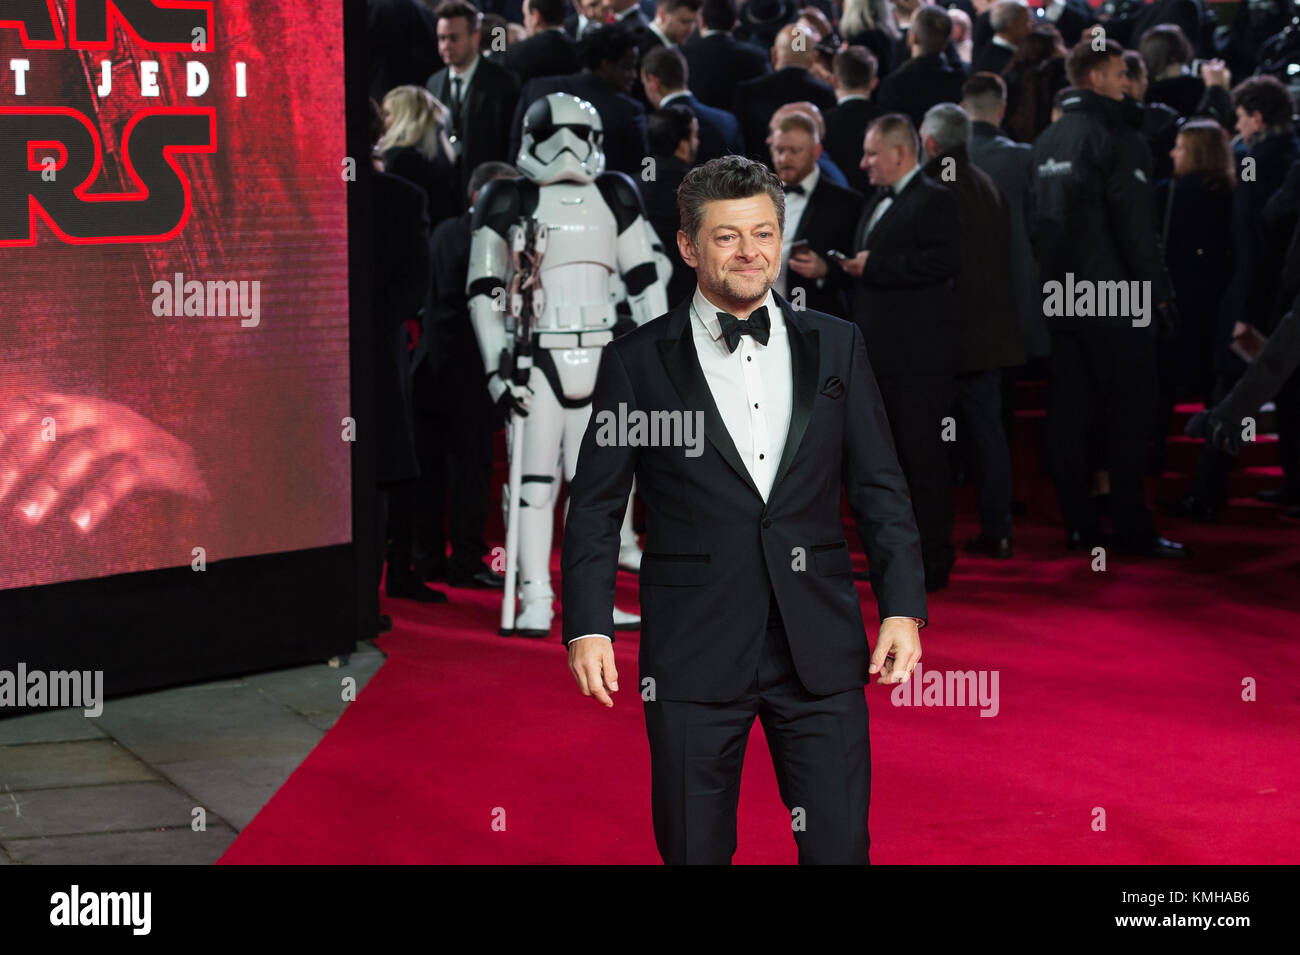 London, UK. 12th Dec, 2017. Andy Serkis arrives for the European film premiere of 'Star Wars: The Last Jedi' - Stock Image